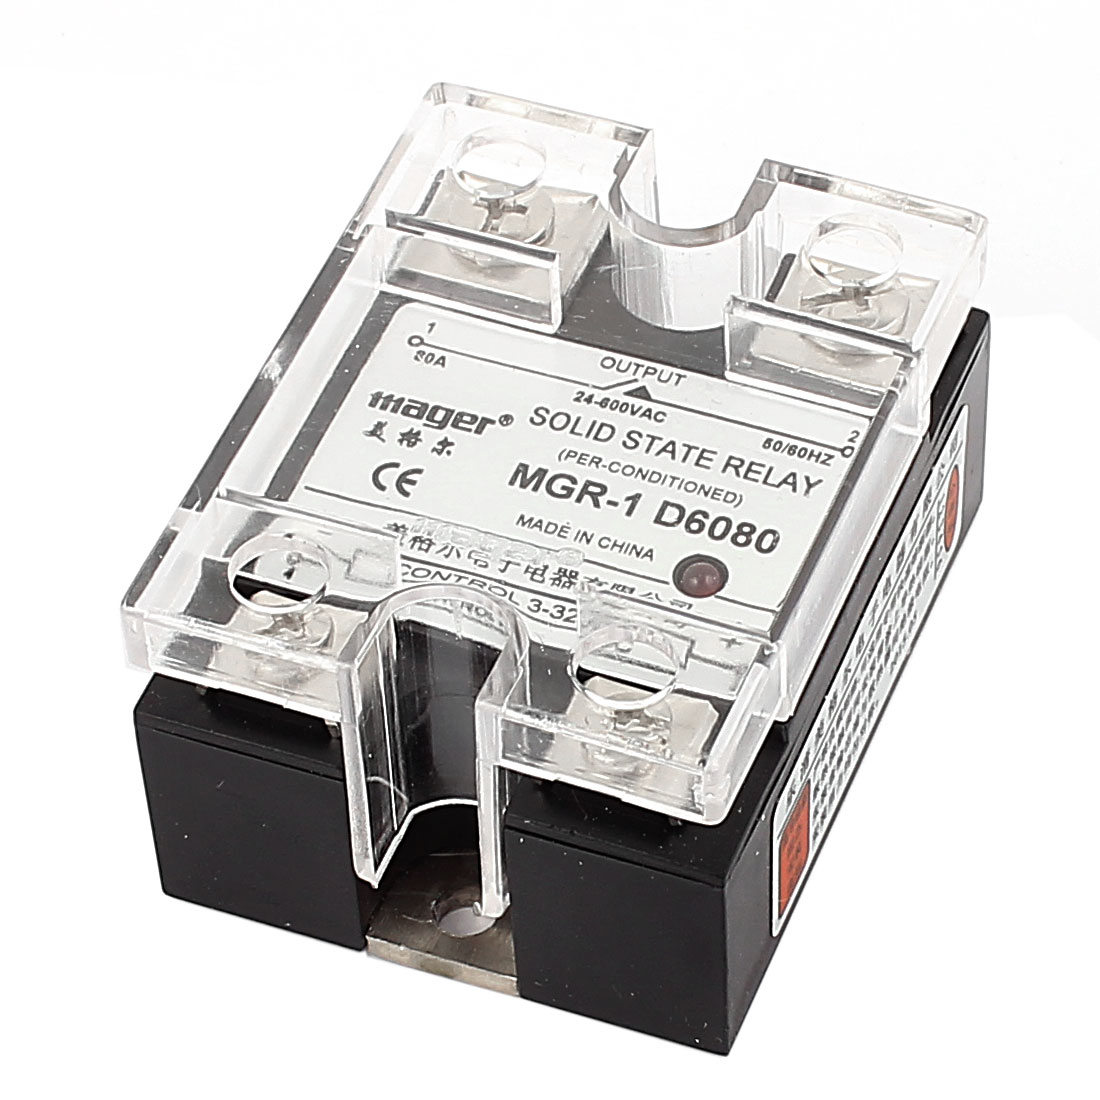 DC-AC DC 3-32V 4A Input to AC 24-600V 80A Output Solid State Relay